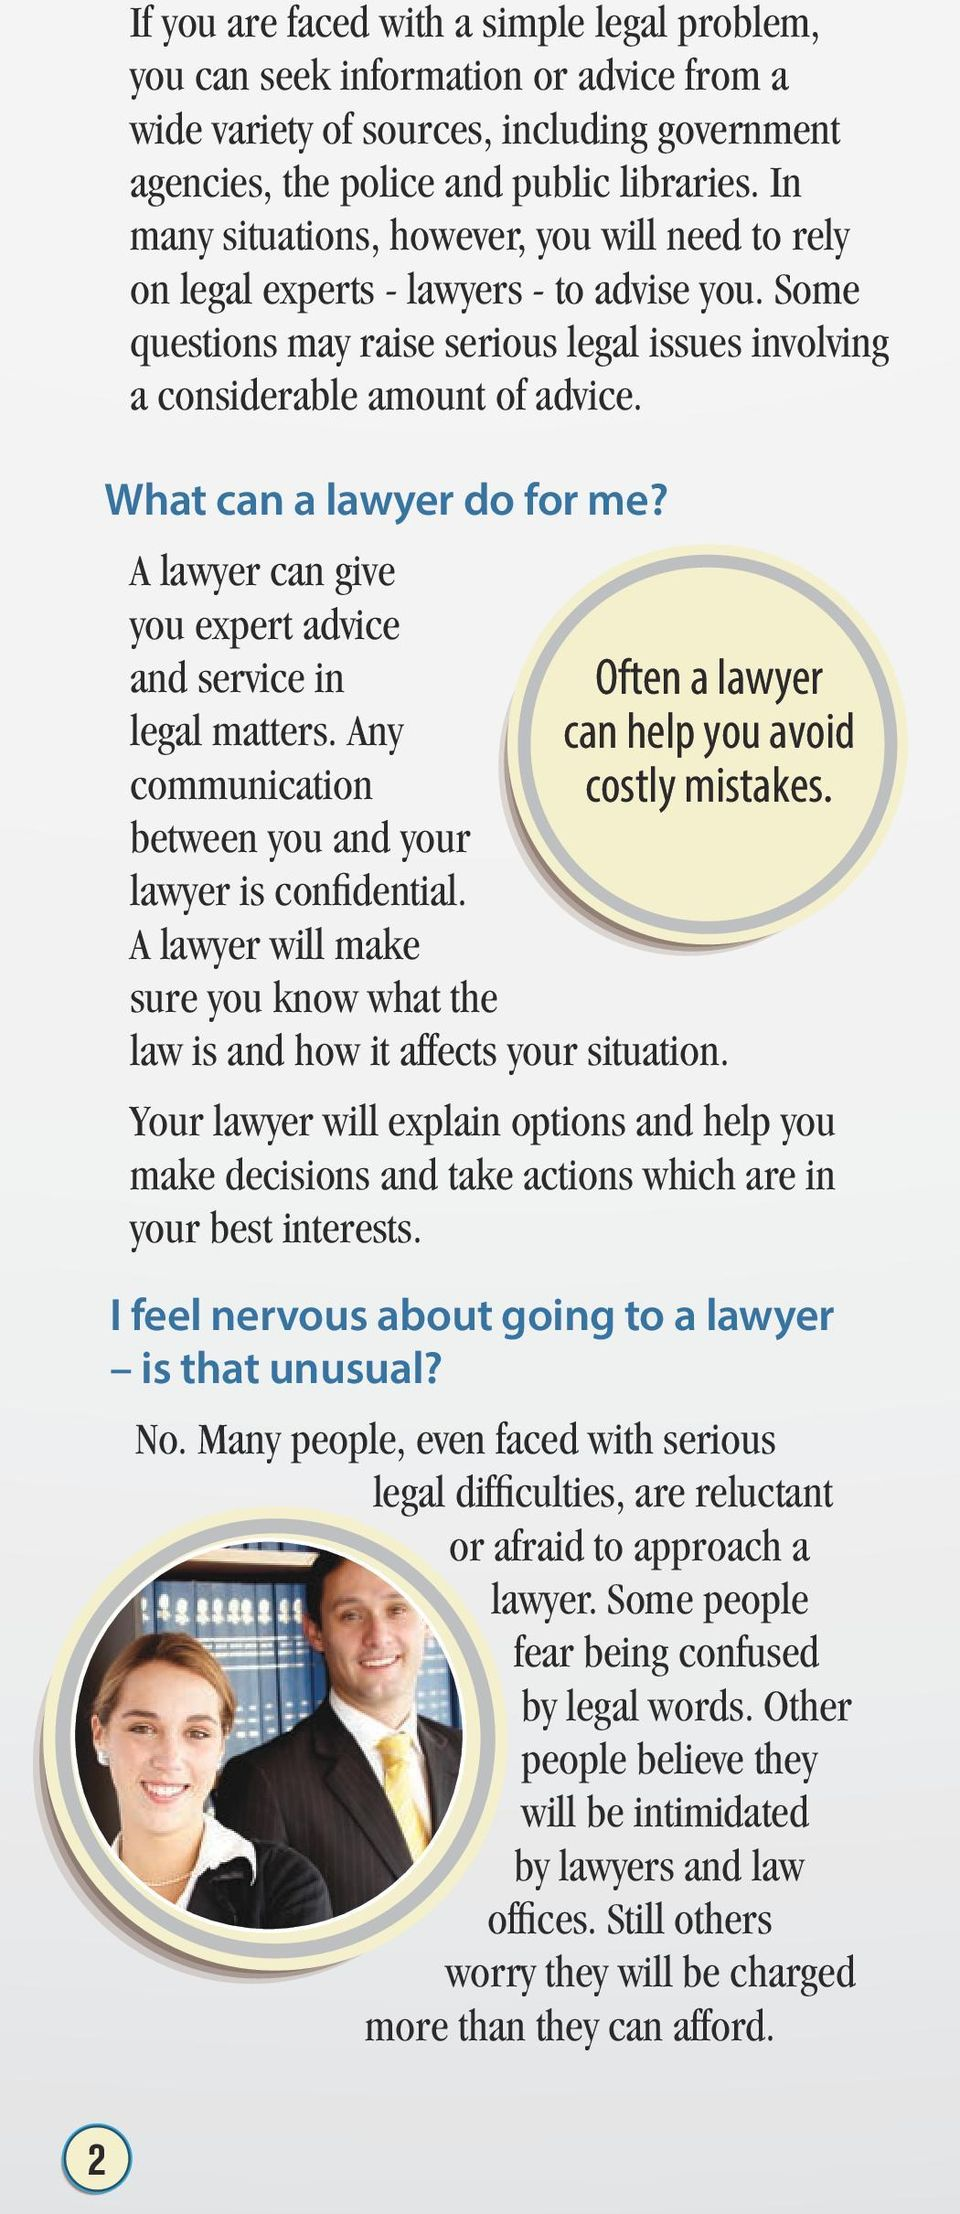 What can a lawyer do for me? A lawyer can give you expert advice and service in Often a lawyer legal matters. Any can help you avoid communication costly mistakes.